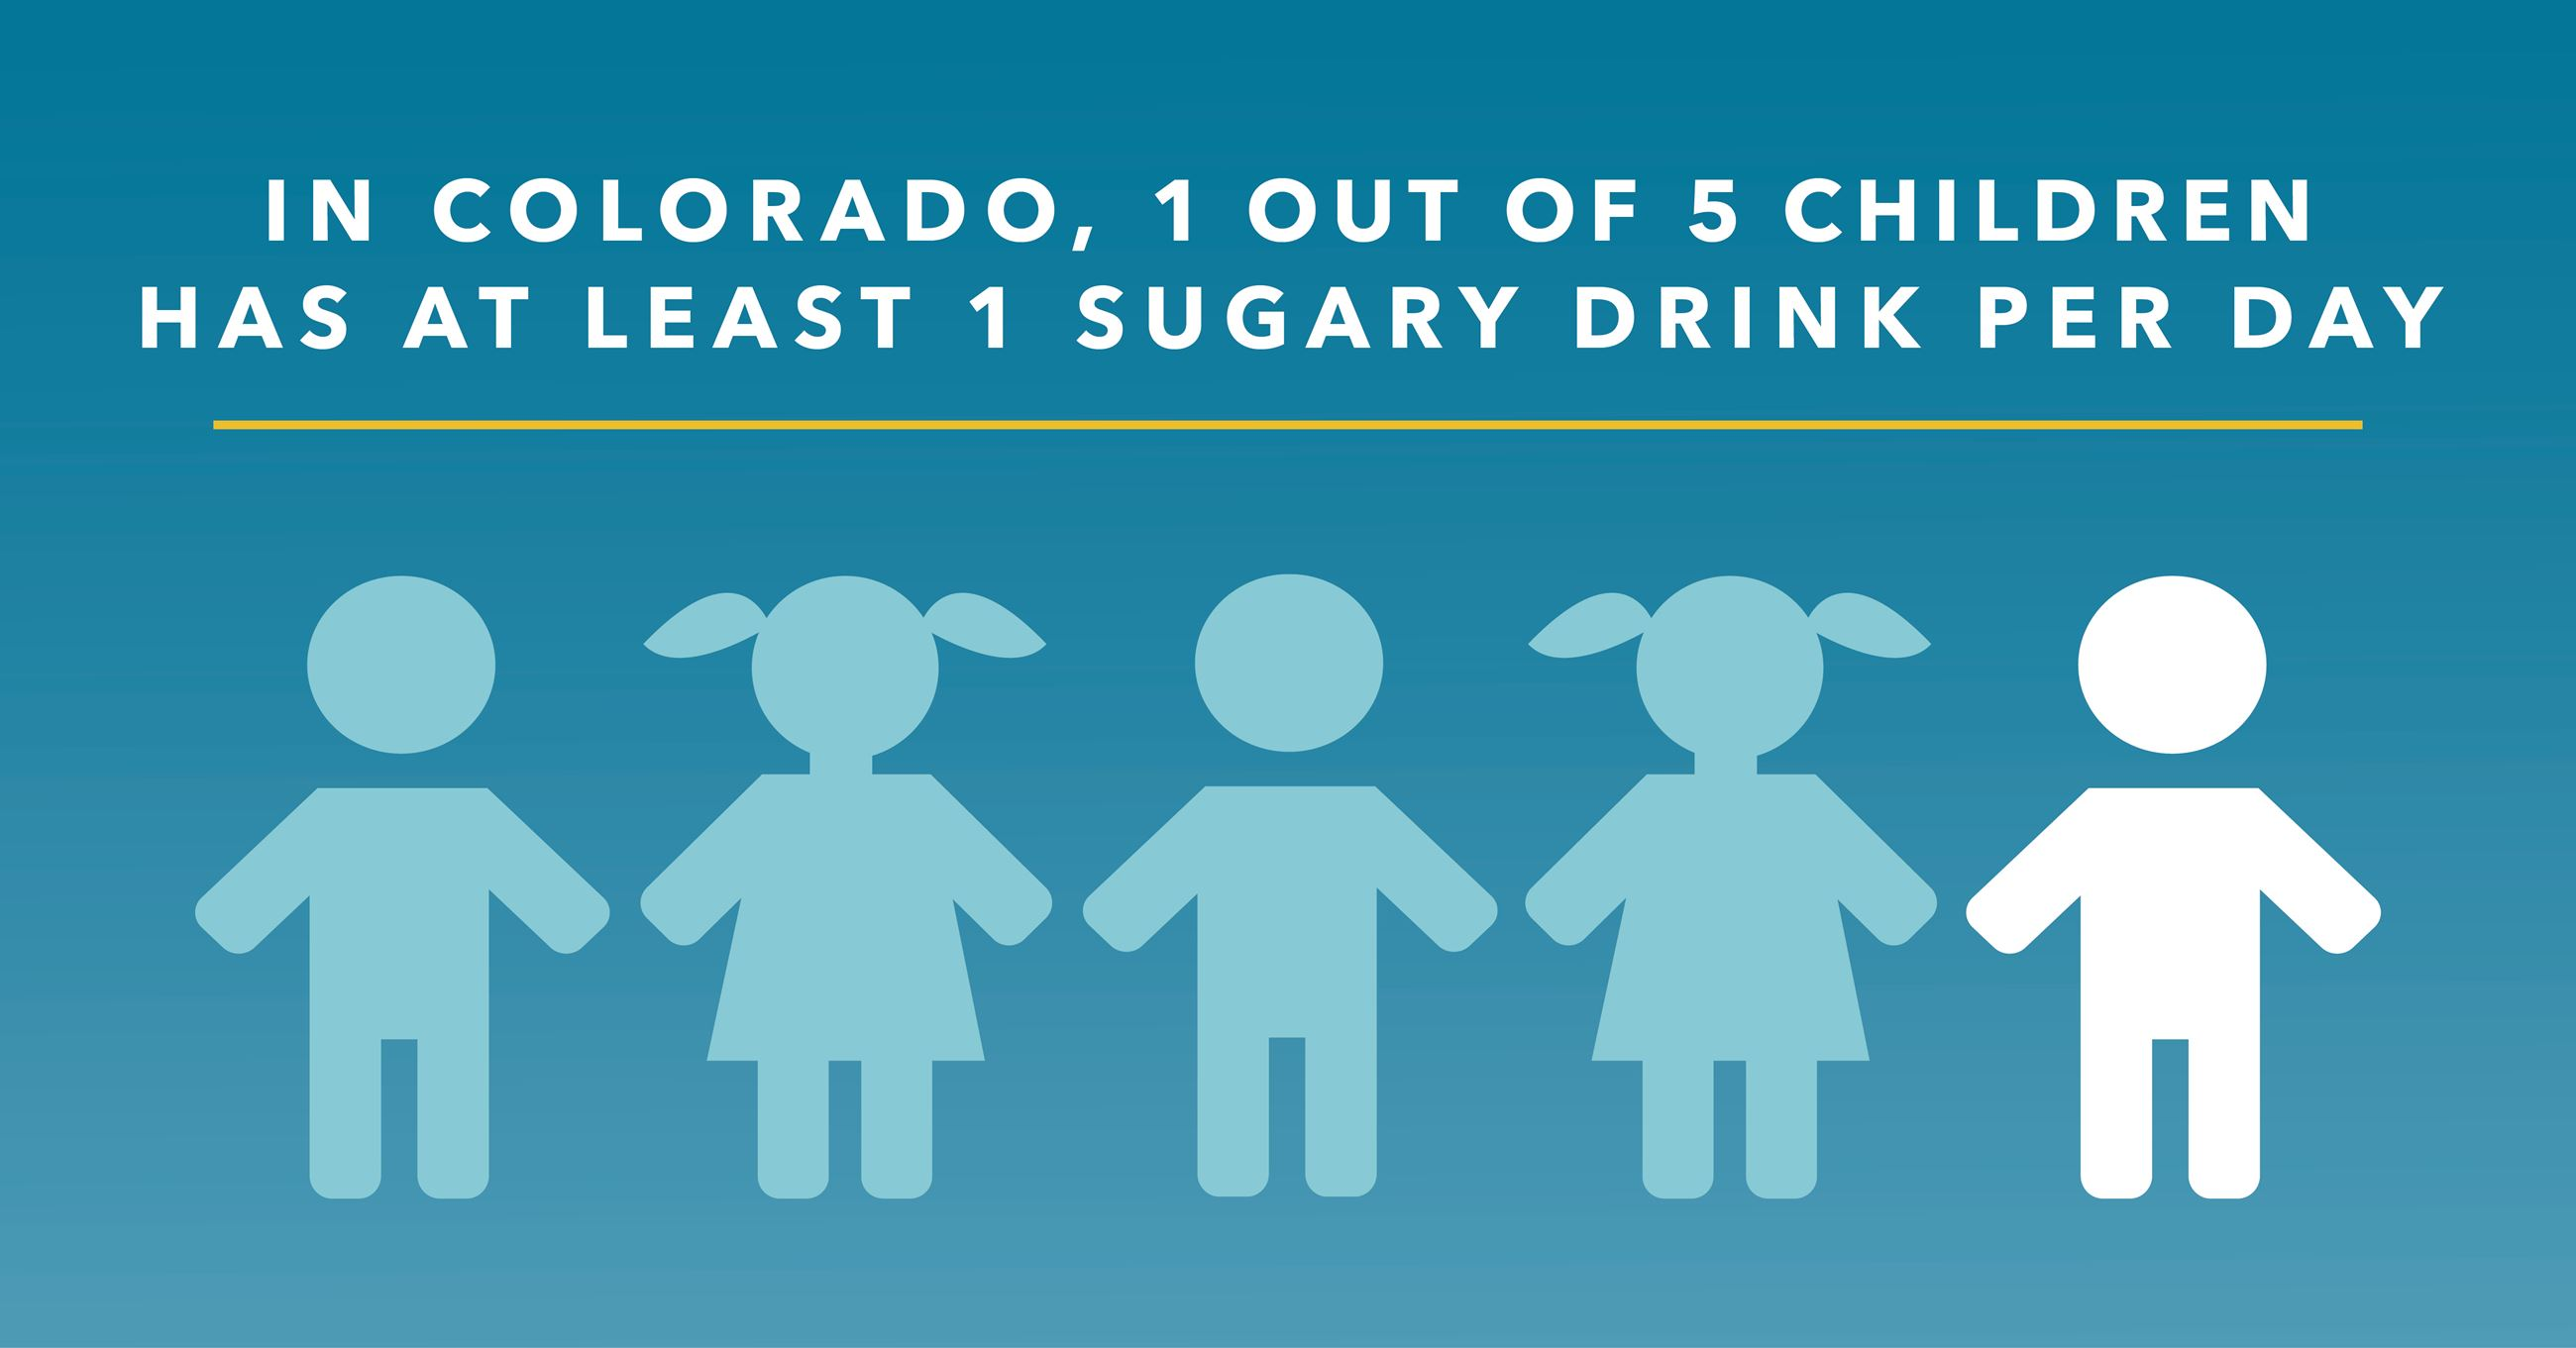 In Colorado, 1 out of 5 children has at least 1 sugary drink per day.